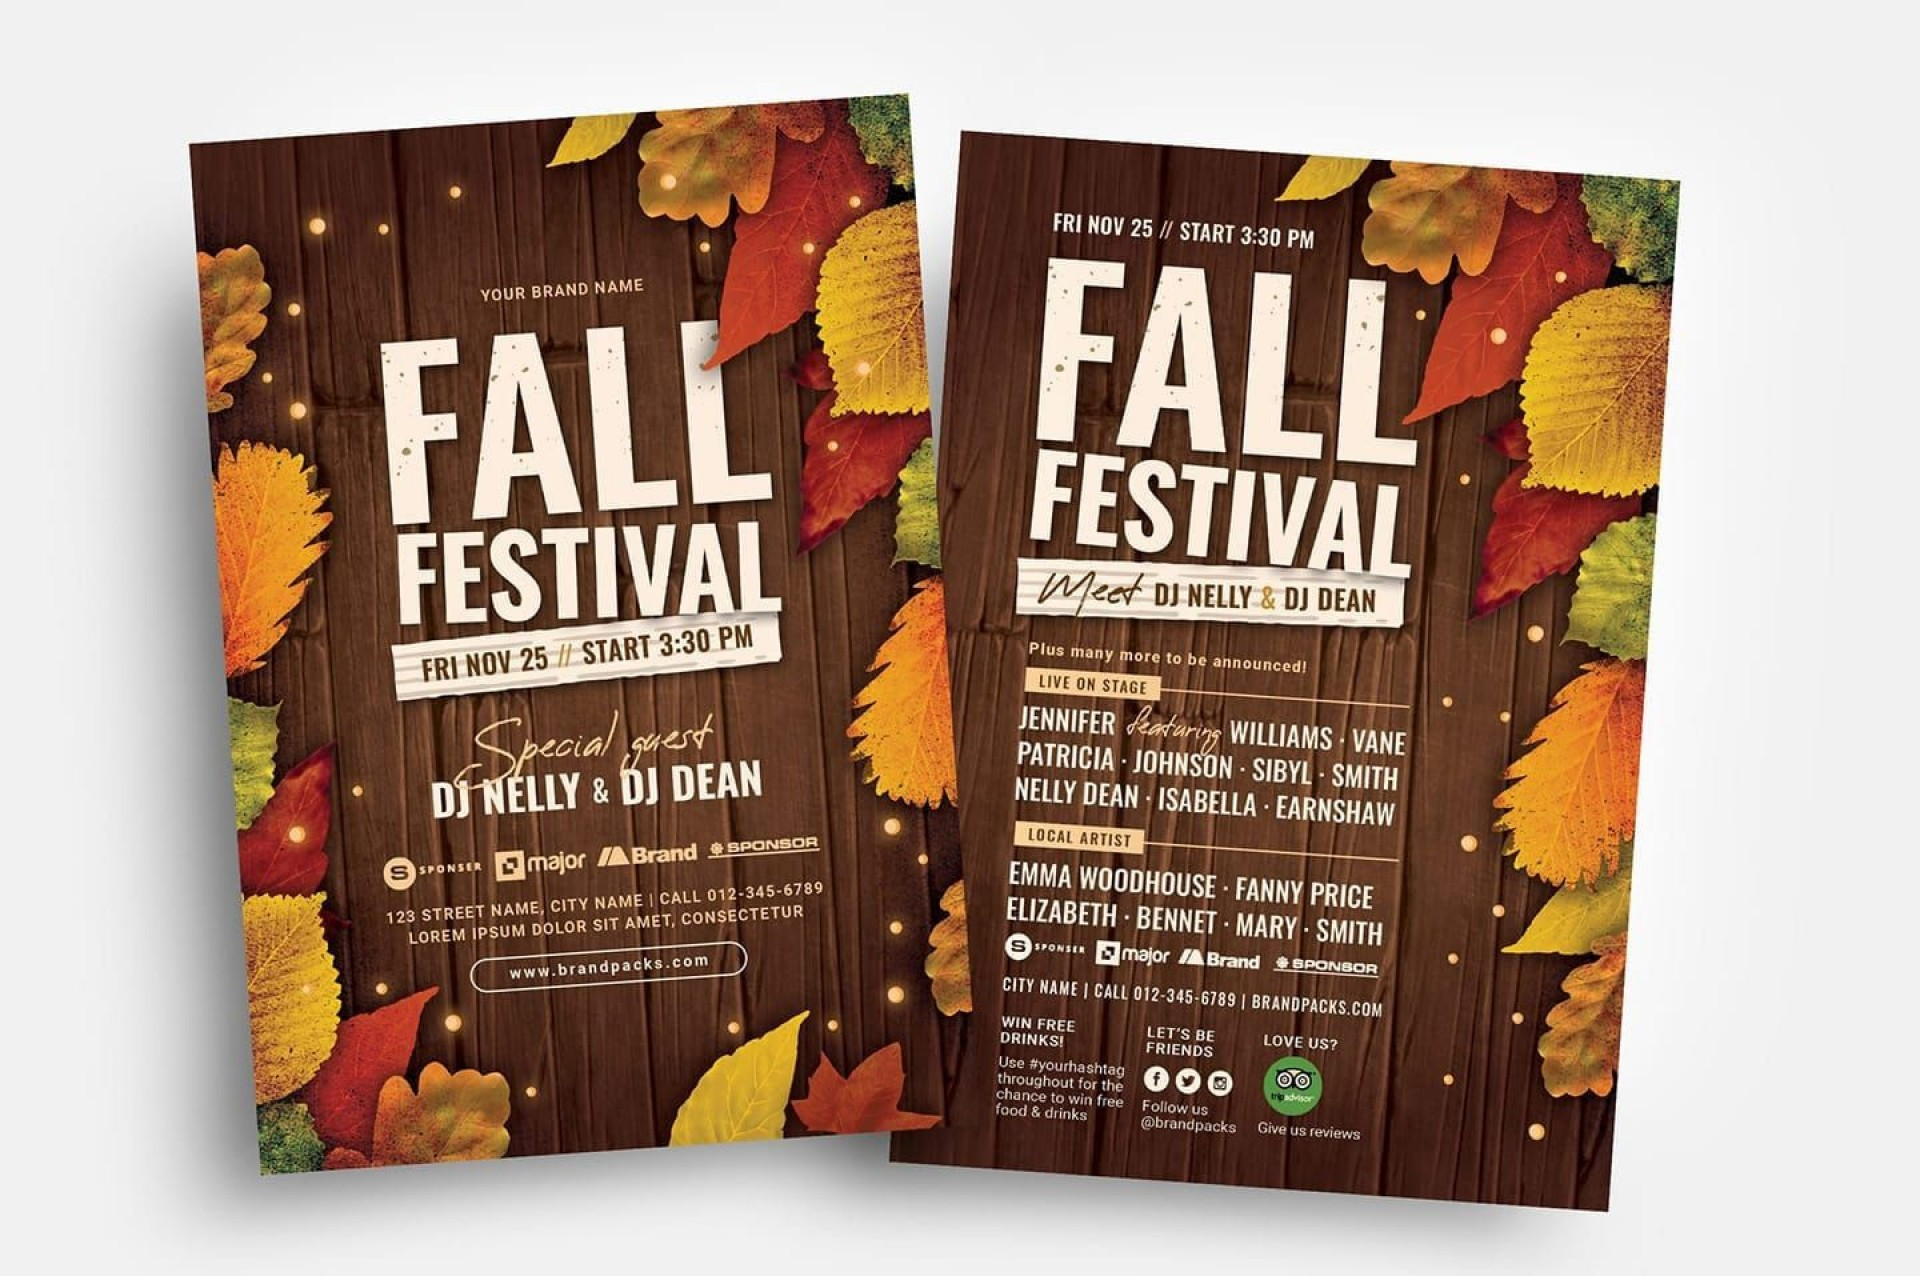 005 Fantastic Fall Festival Flyer Template Inspiration  Free1920